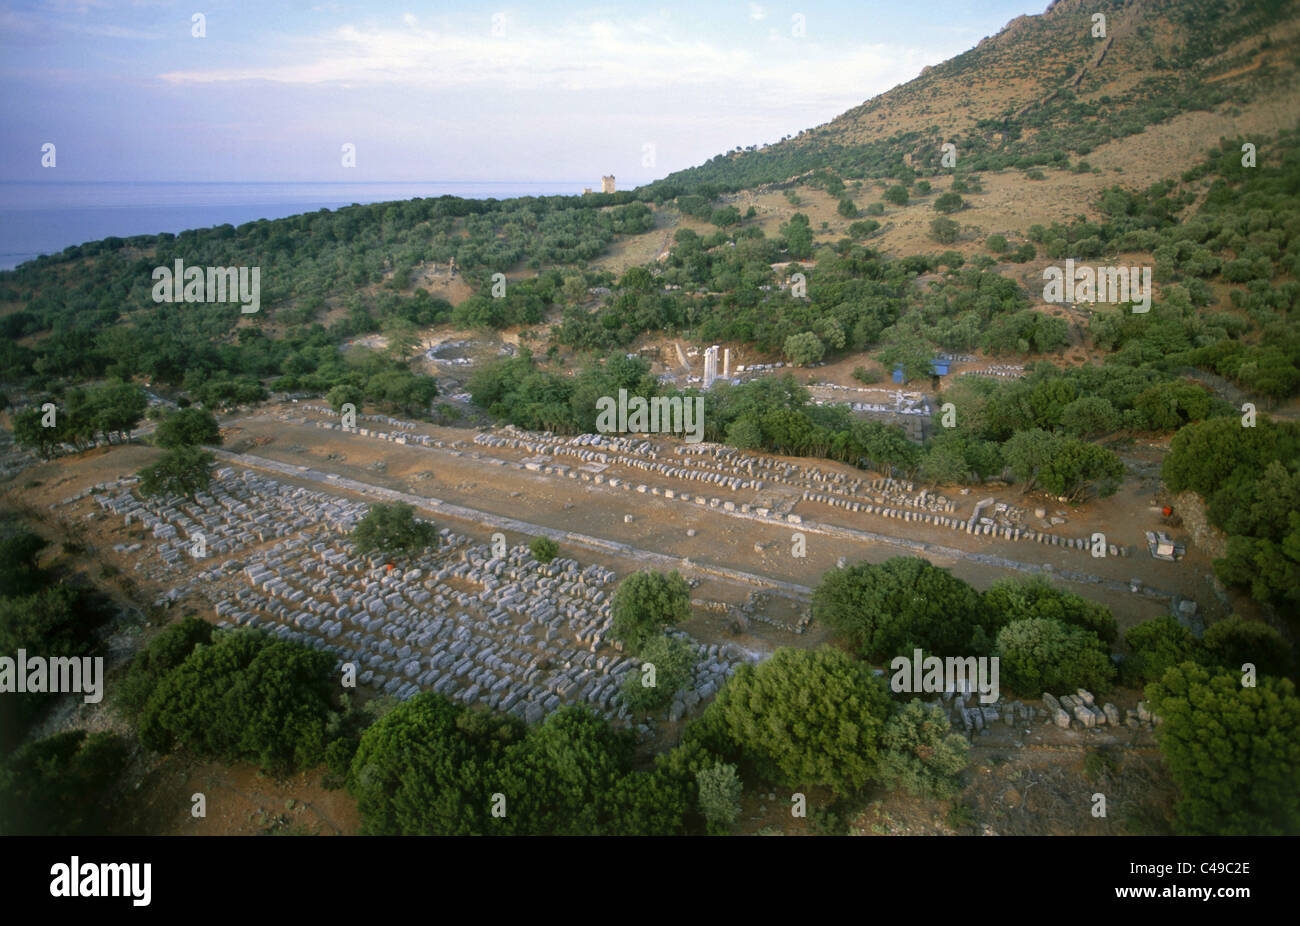 Aerial photograph of the ruins of the ancient Greek city of Palepoli on the island of Samothraki - Stock Image